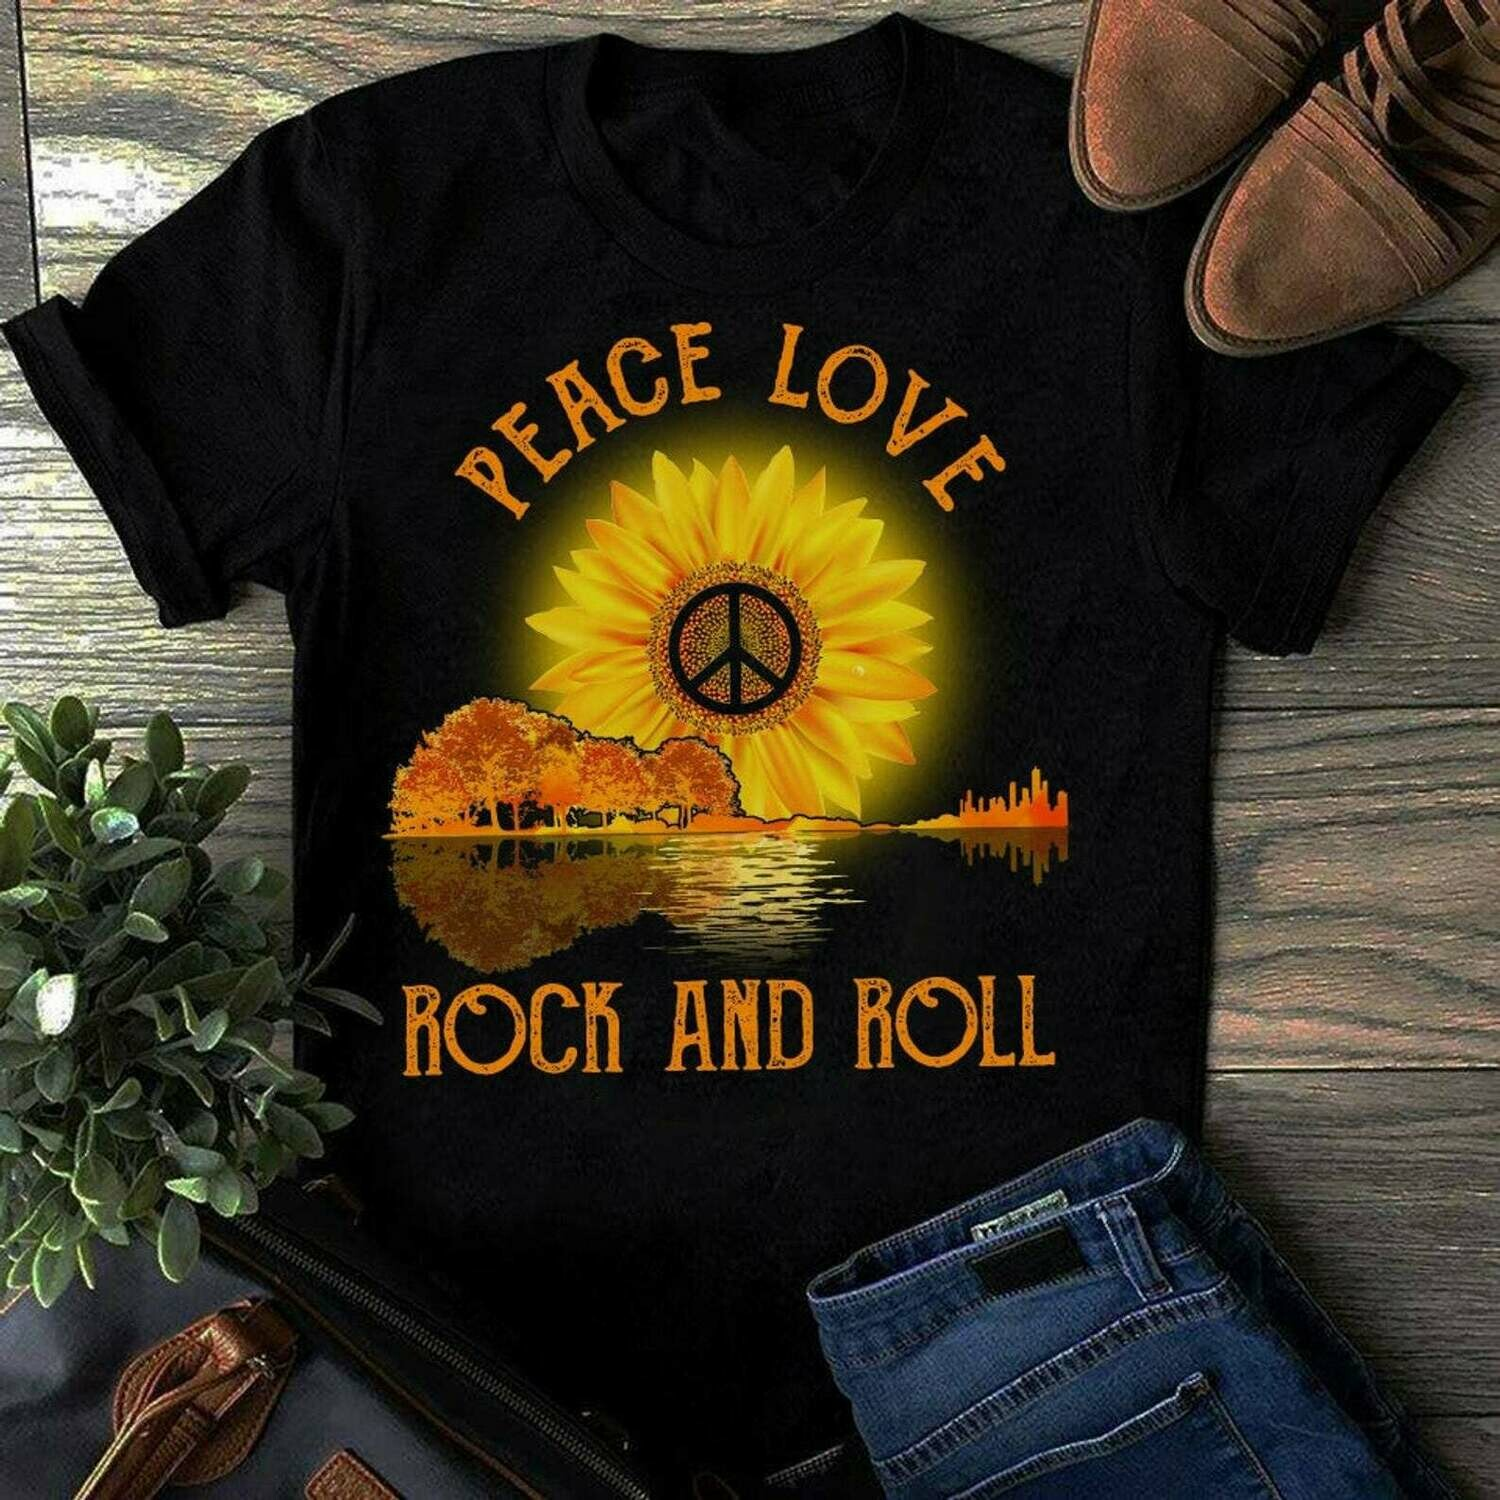 Funny Rock Roll T-Shirt Peace Love and Rock and Roll Tee, sunflower tshirt, Rock and Roll Fans, loves cool Rock & Roll Shirt, father gift